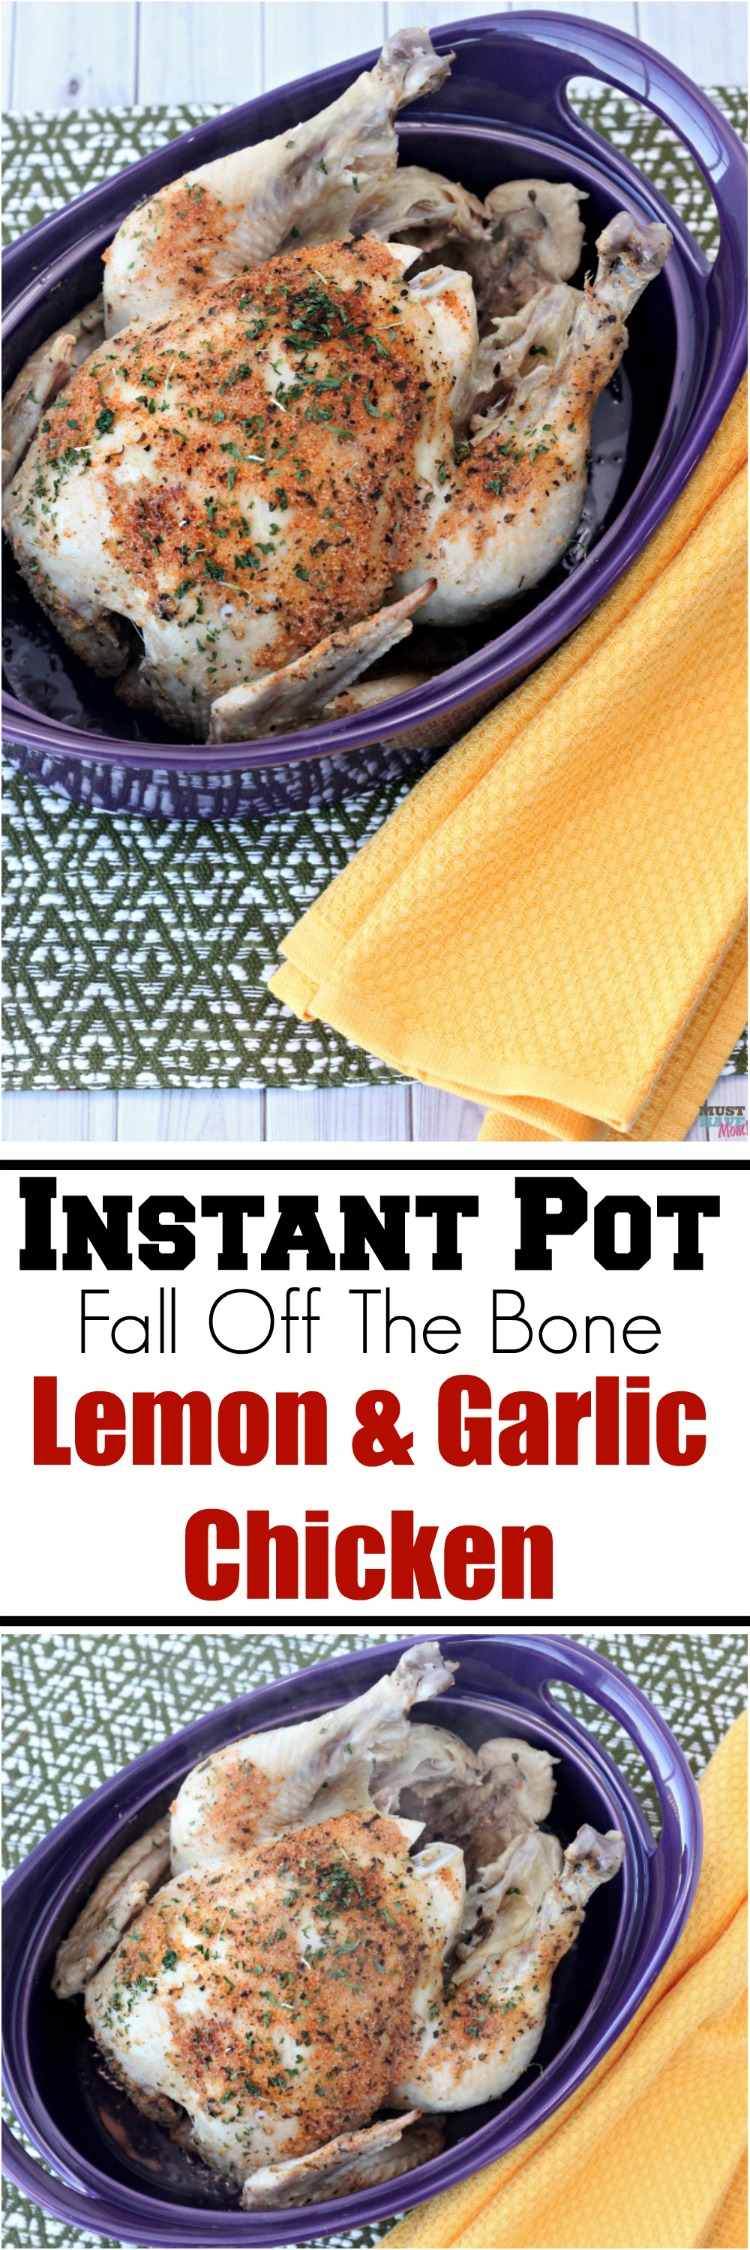 Instant Pot fall off the bone lemon and garlic chicken! Cook a whole chicken in 25 minutes in your pressure cooker! Pressure cooker chicken is so quick & easy. Save this recipe!